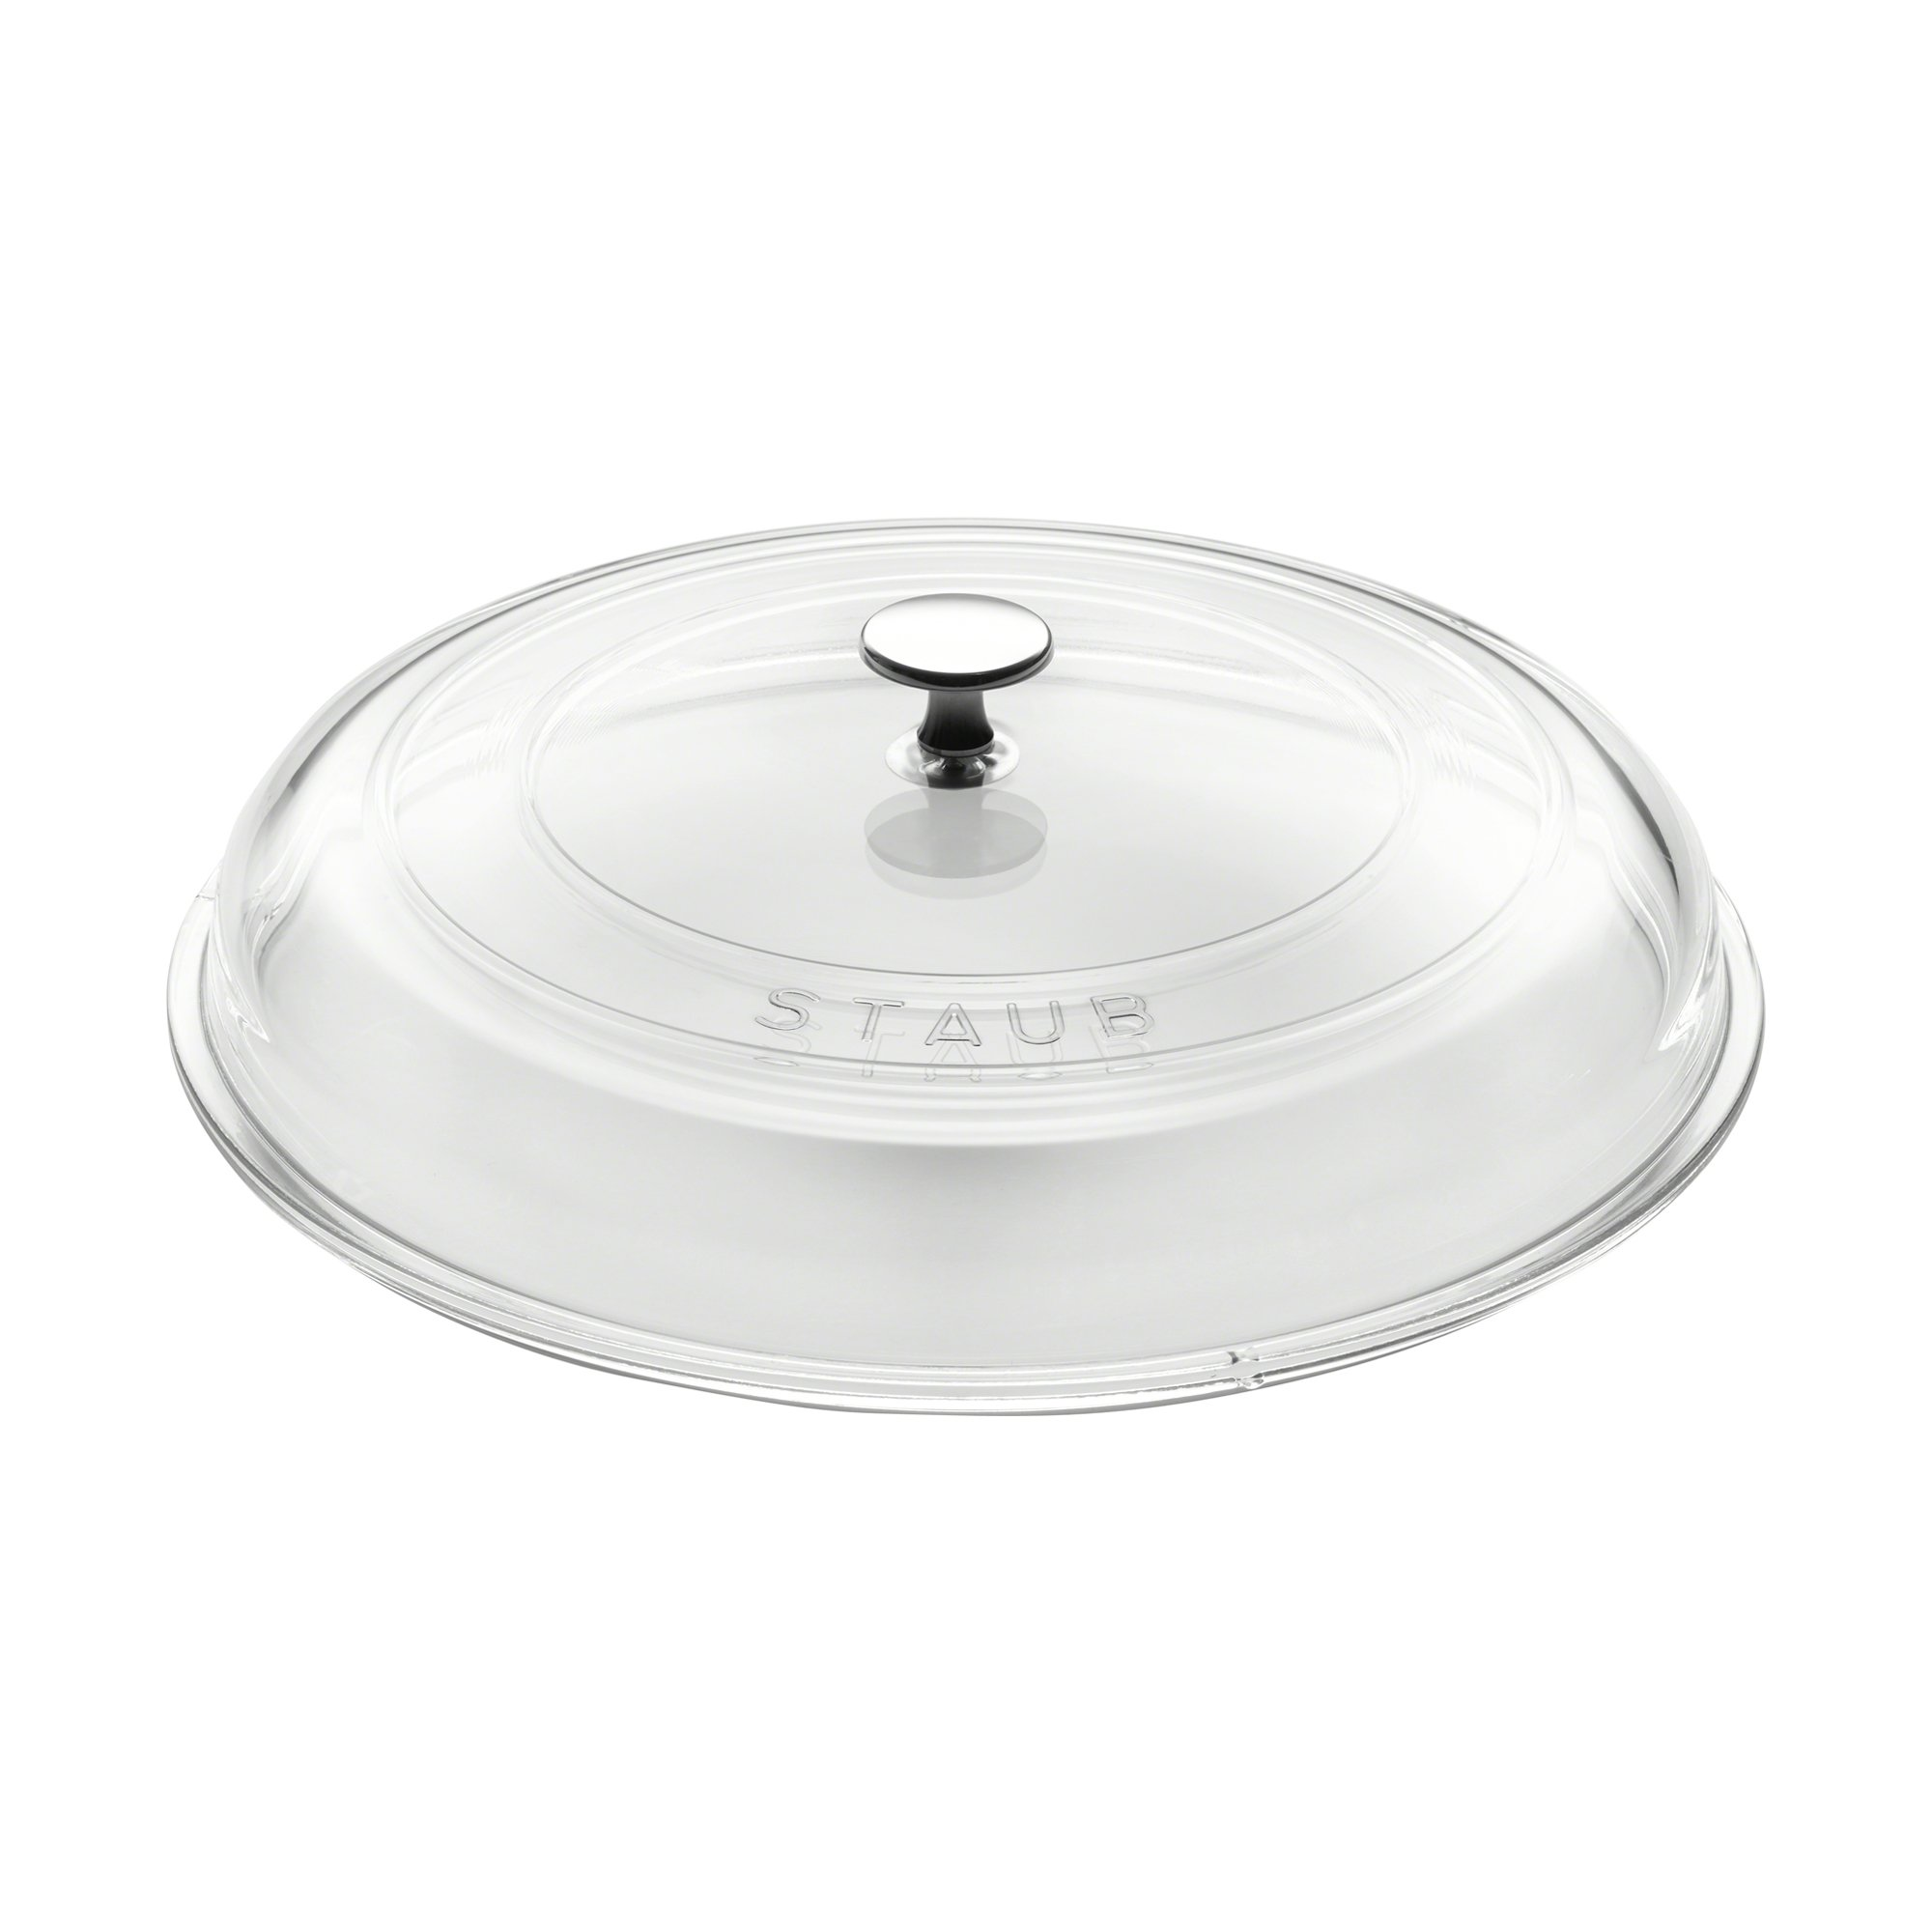 Staub 40501-030 Glass Domed Lid, 12'', Clear